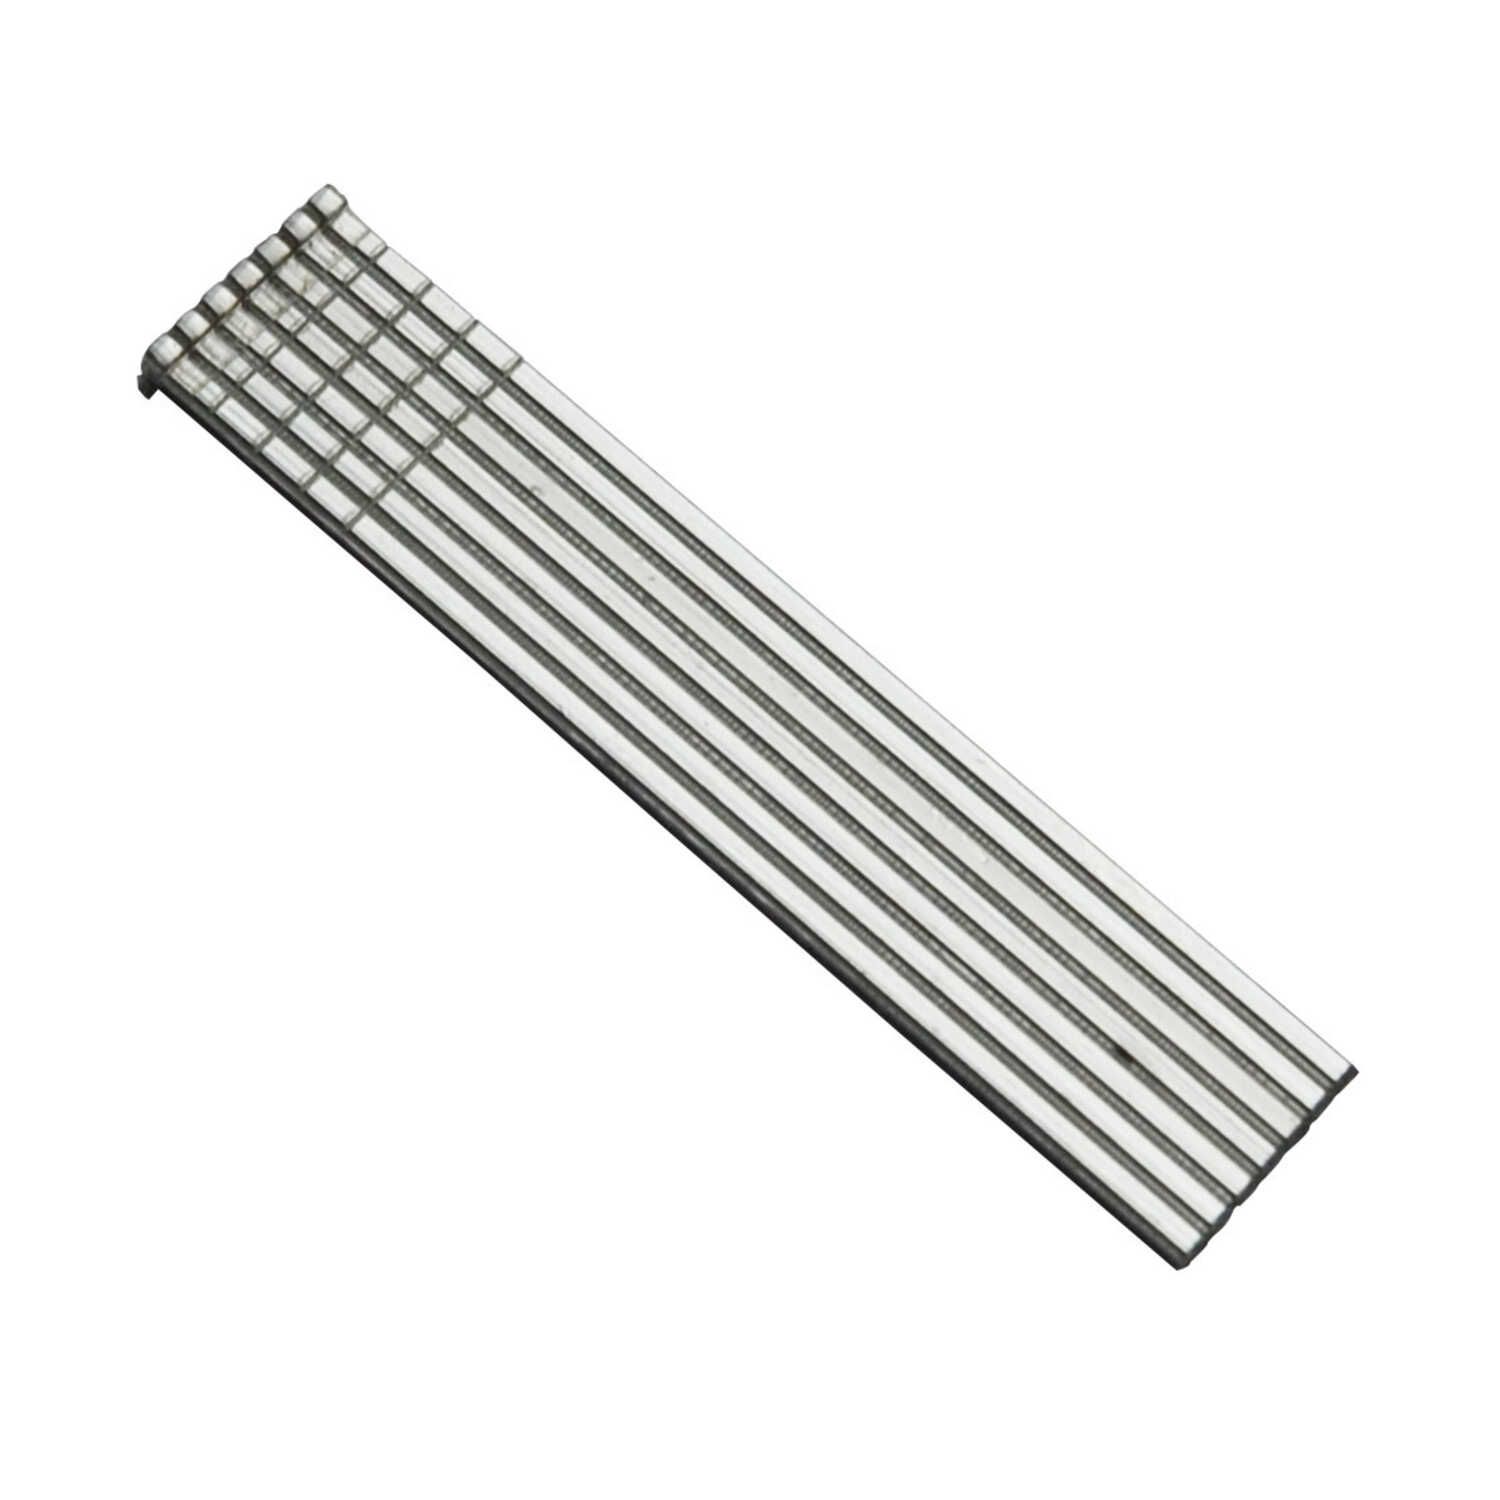 Grip-Rite  18 Ga. Smooth Shank  Straight Strip  Brad Nails  1 in. L x 0.05 in. Dia. 5000 count